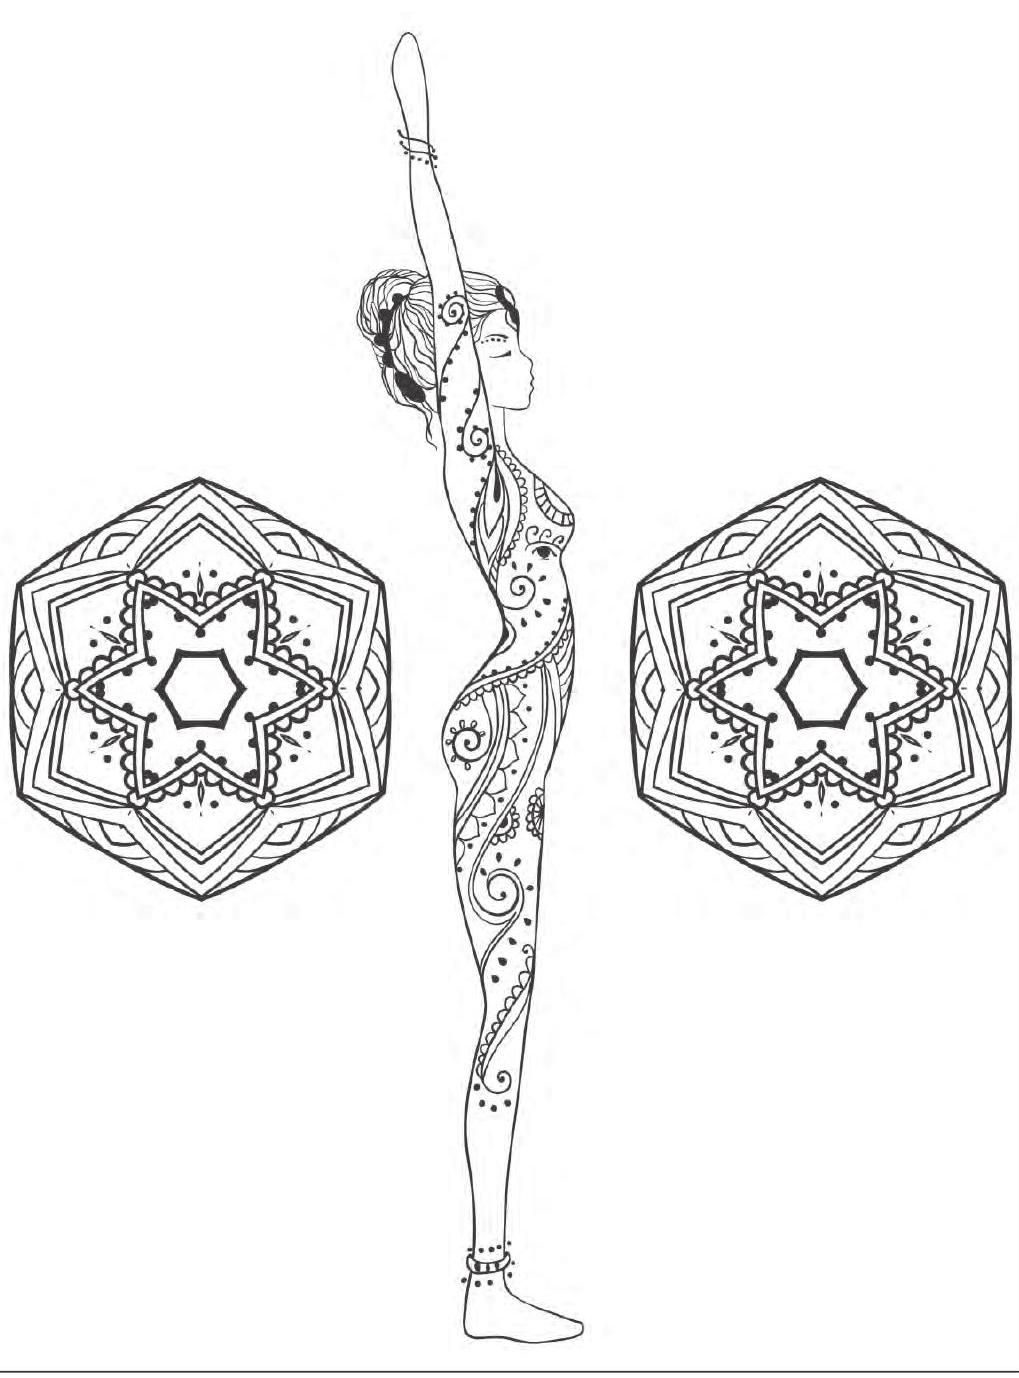 Yoga And Meditation Coloring Book For Adults With Yoga Poses And Mandalas Yoga Coloring Book Coloring Books Coloring Pages [ 1378 x 1019 Pixel ]